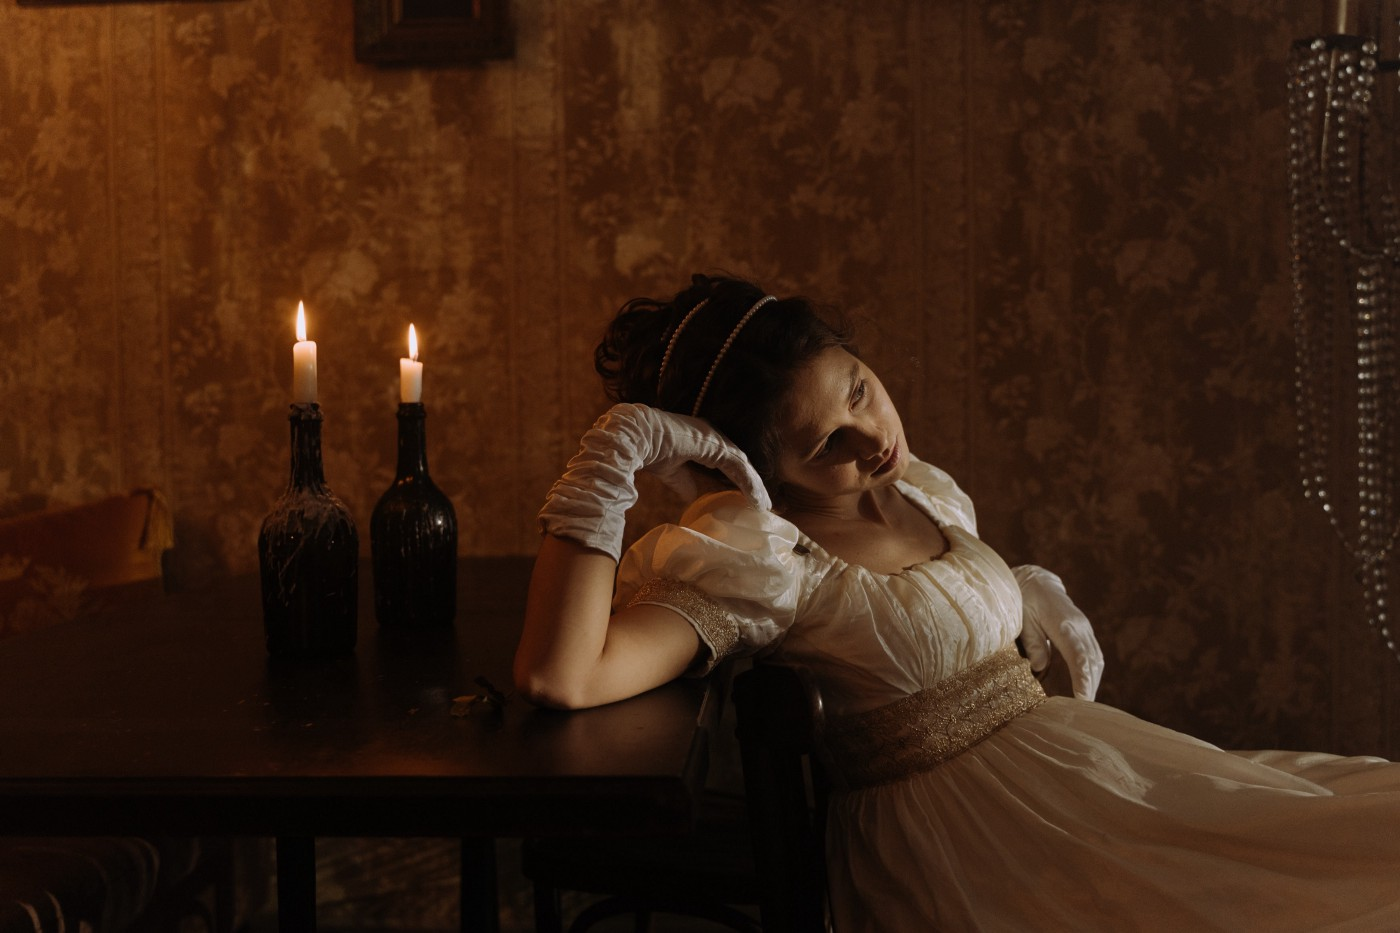 Woman in period costume leaning against a table with candles in bottles